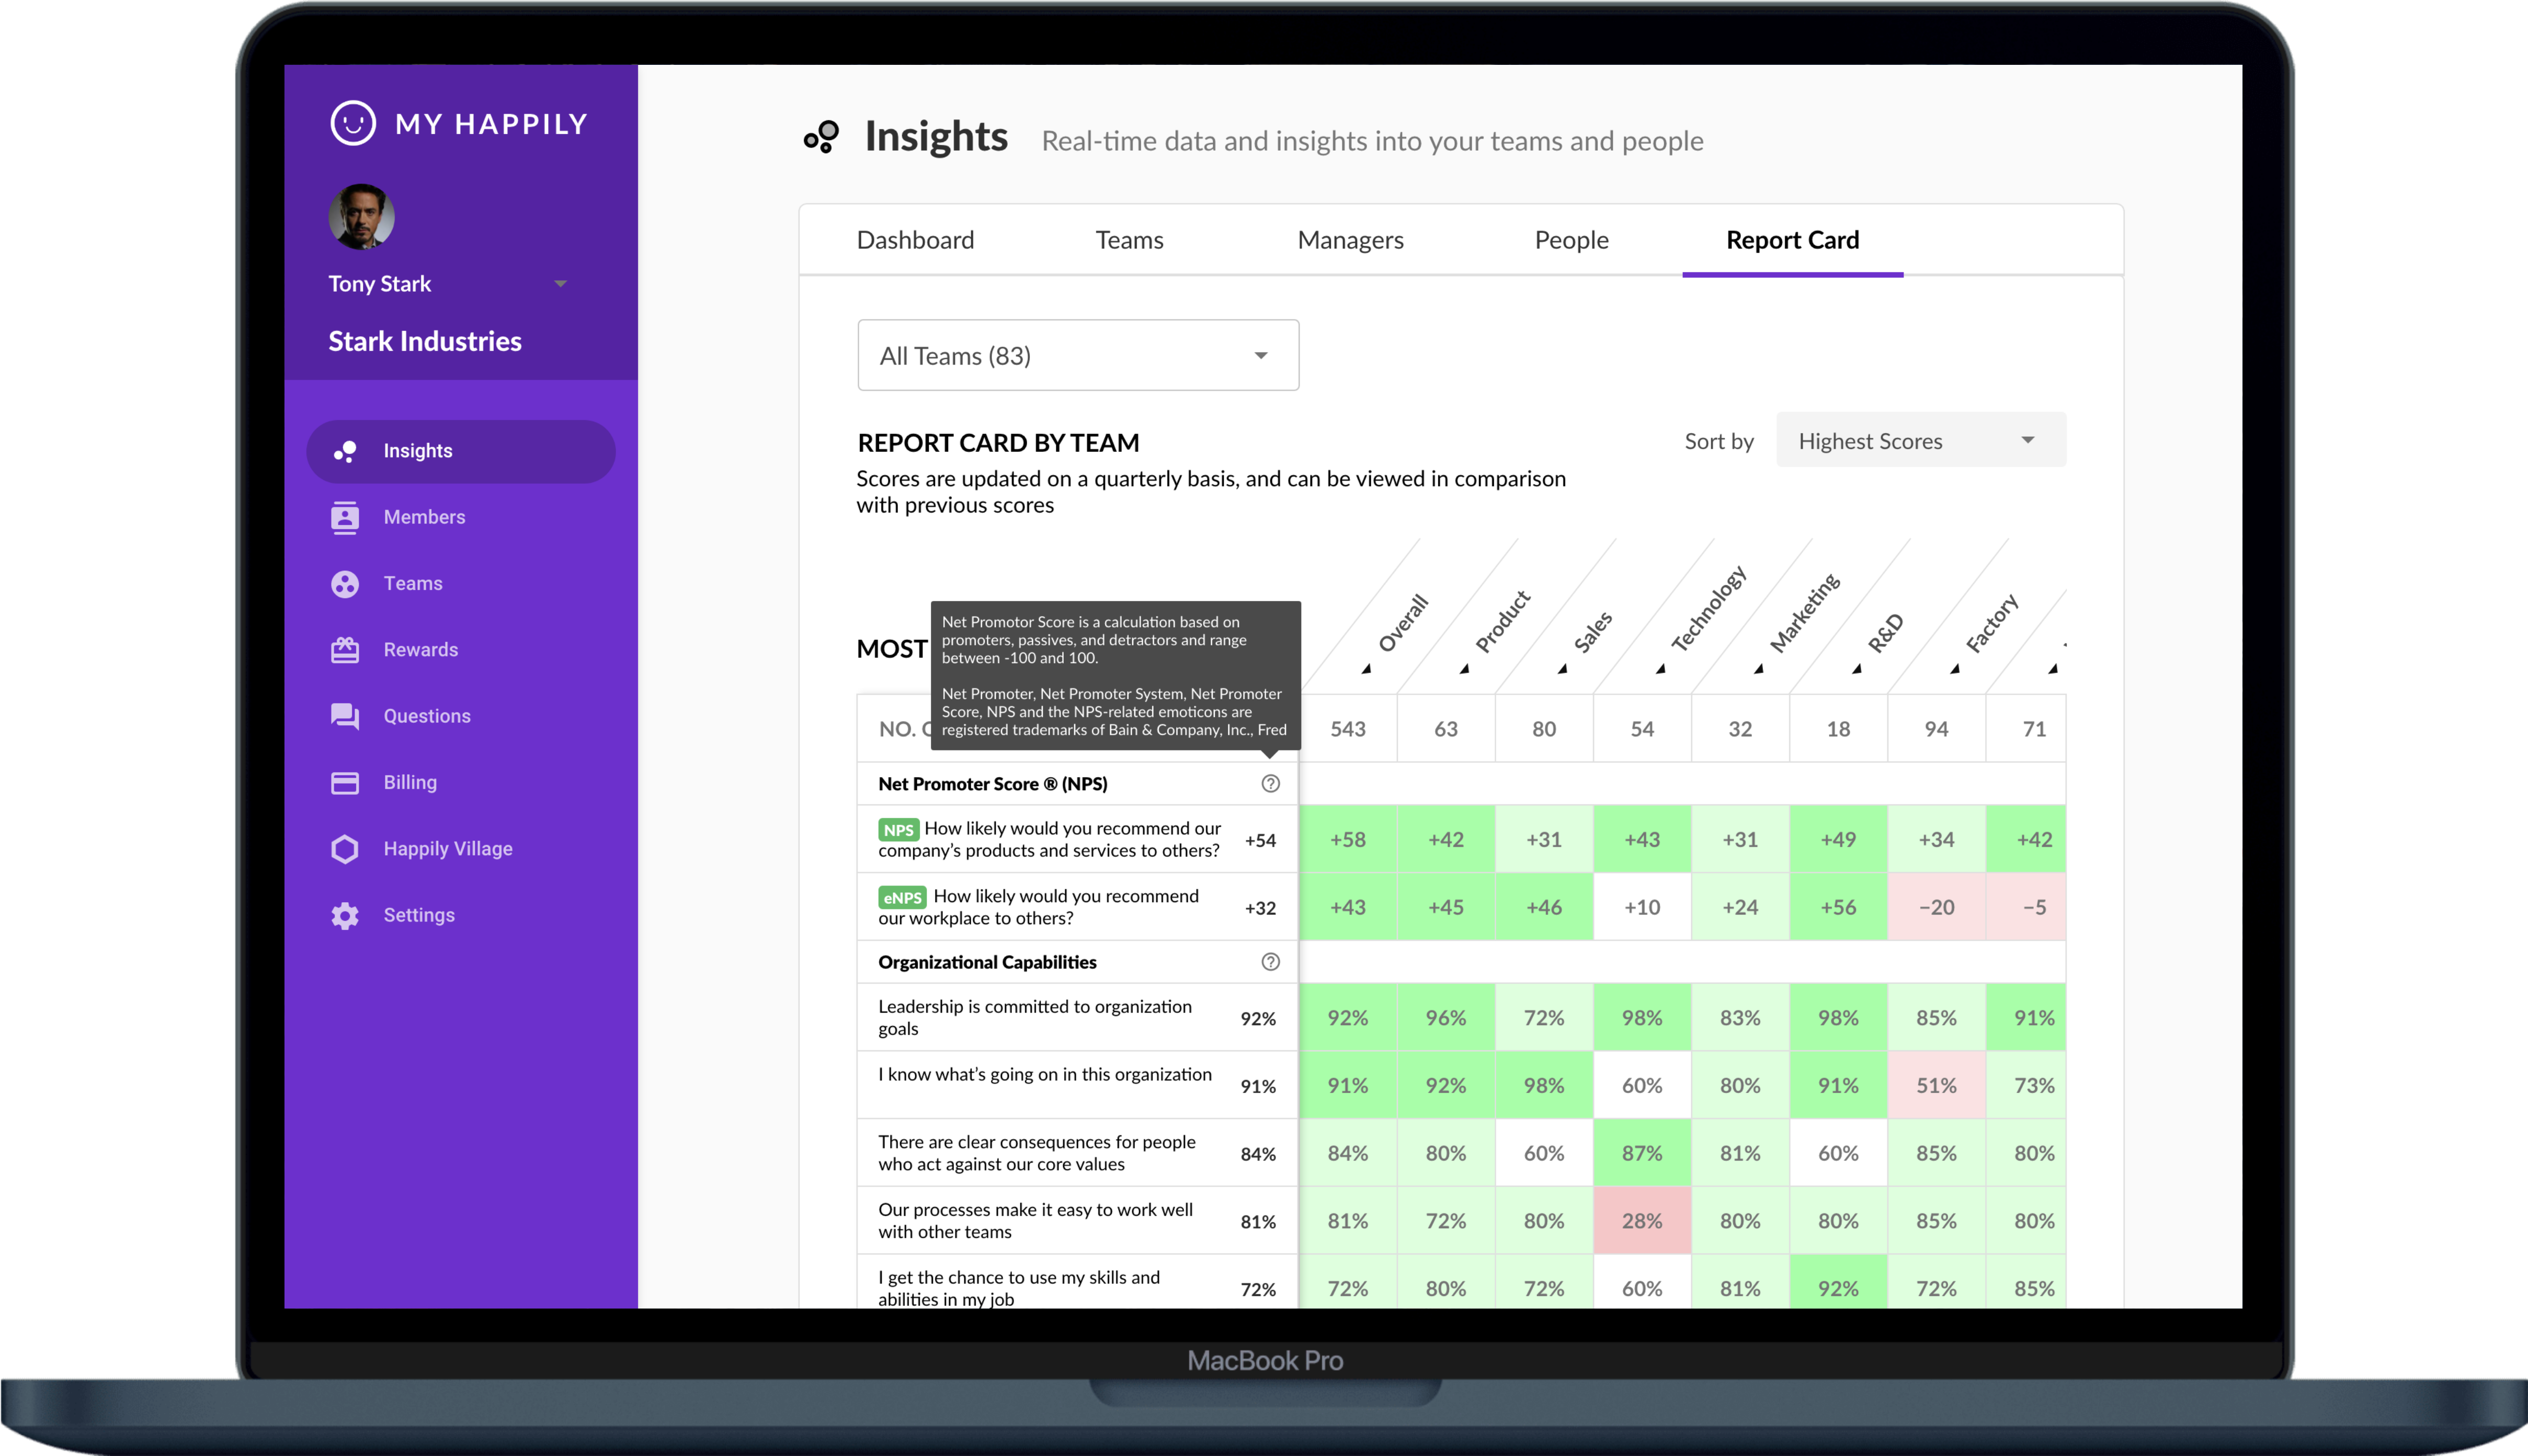 Dashboard provides real time insights from across the company to allow management to take action at a higher level.